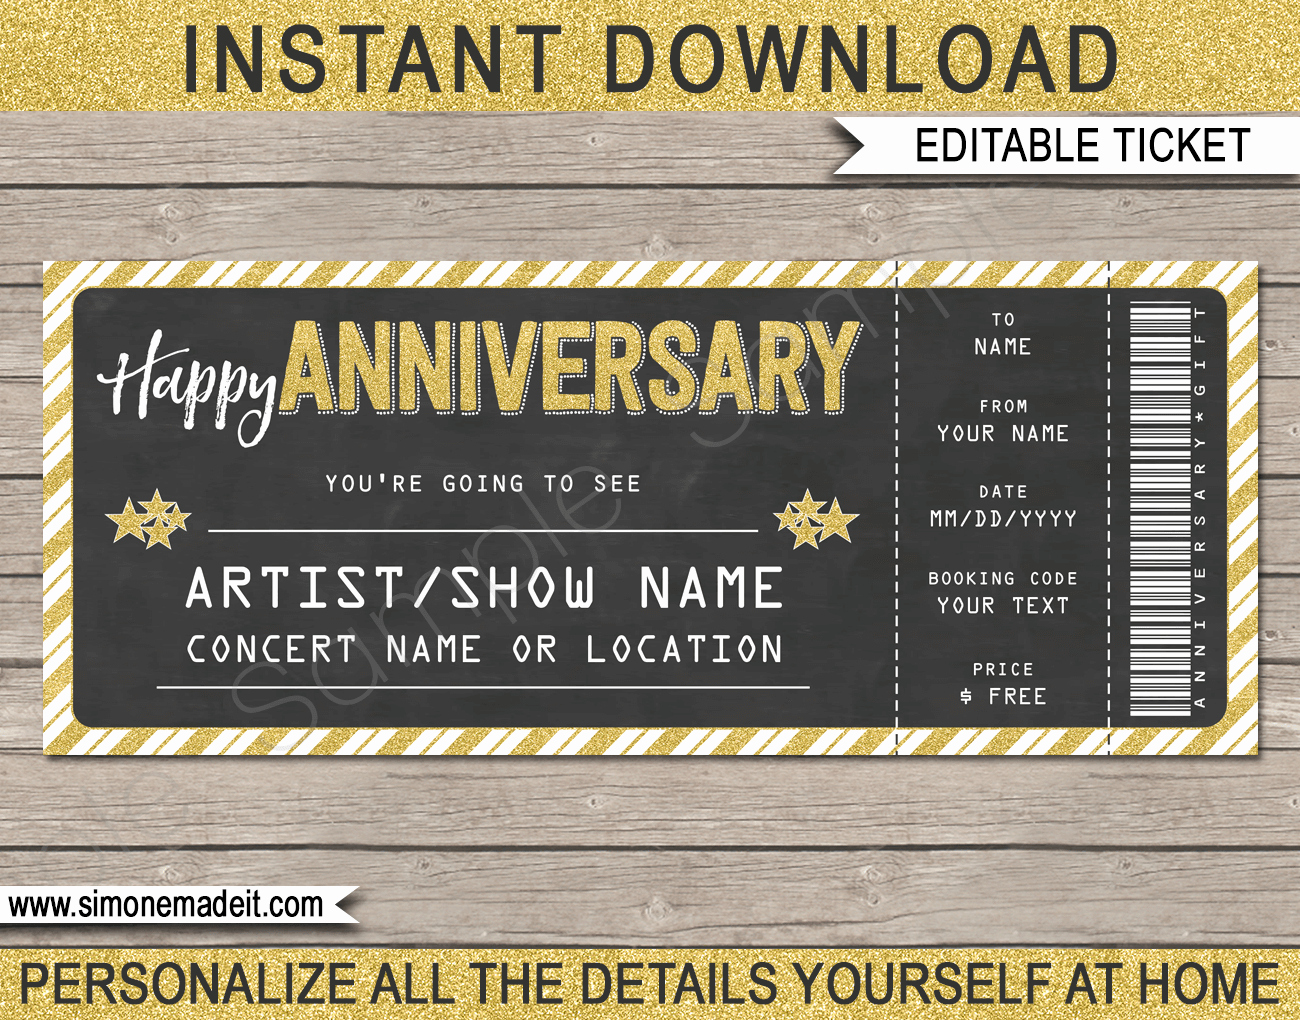 Concert Ticket Template Free Elegant Printable Anniversary Concert Ticket Gift Template